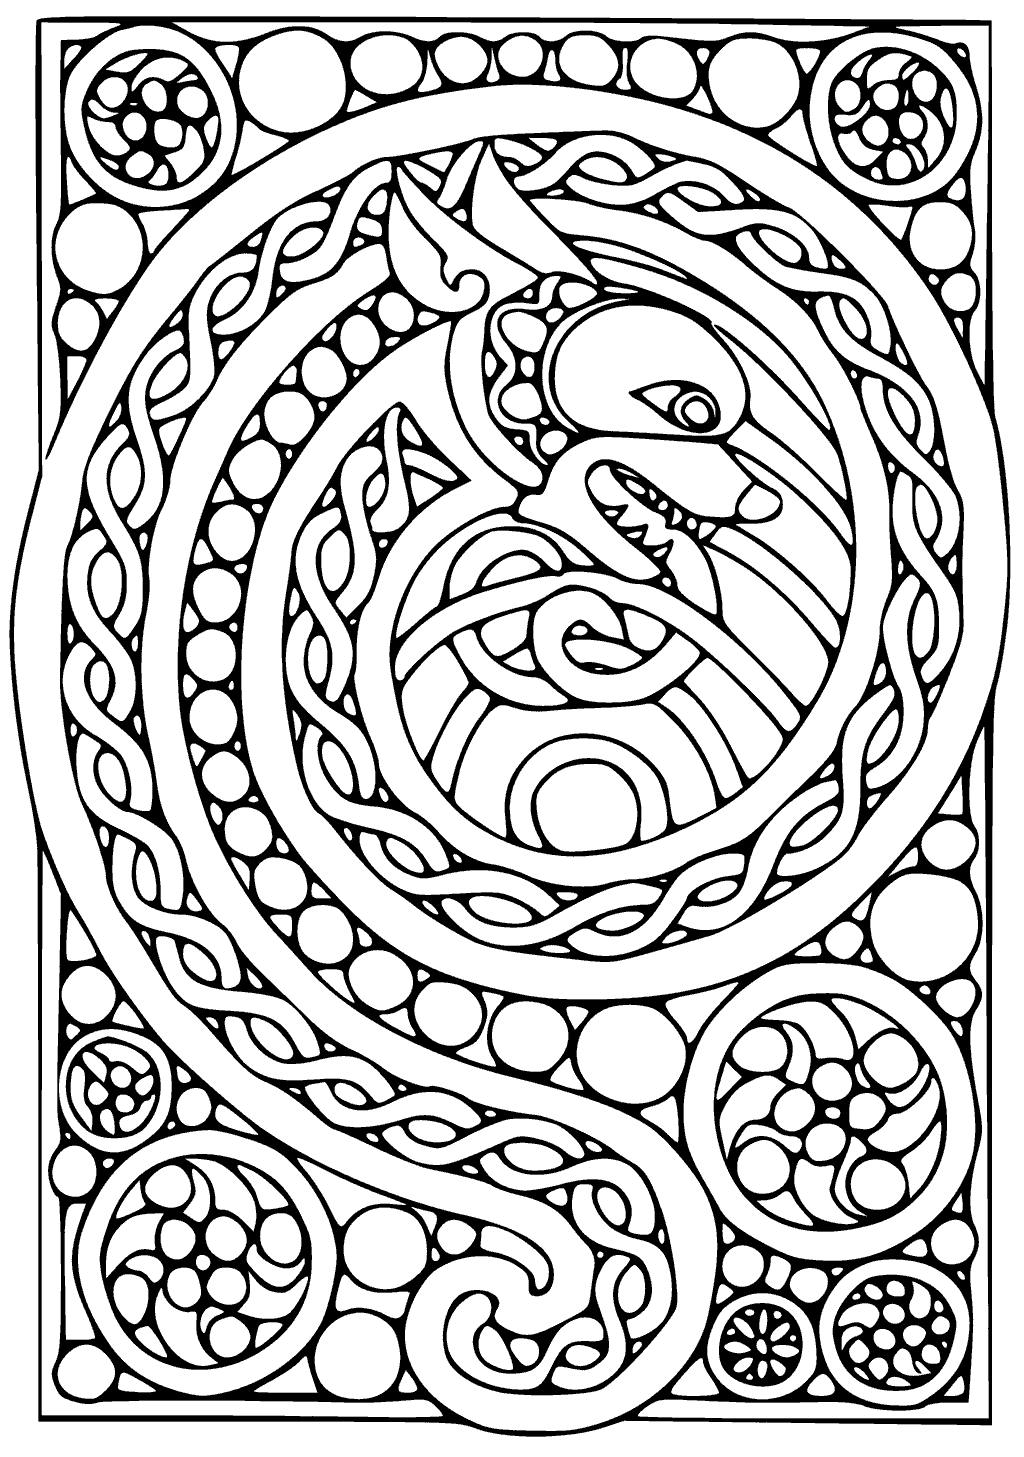 Free Celtic Art Coloring Pages